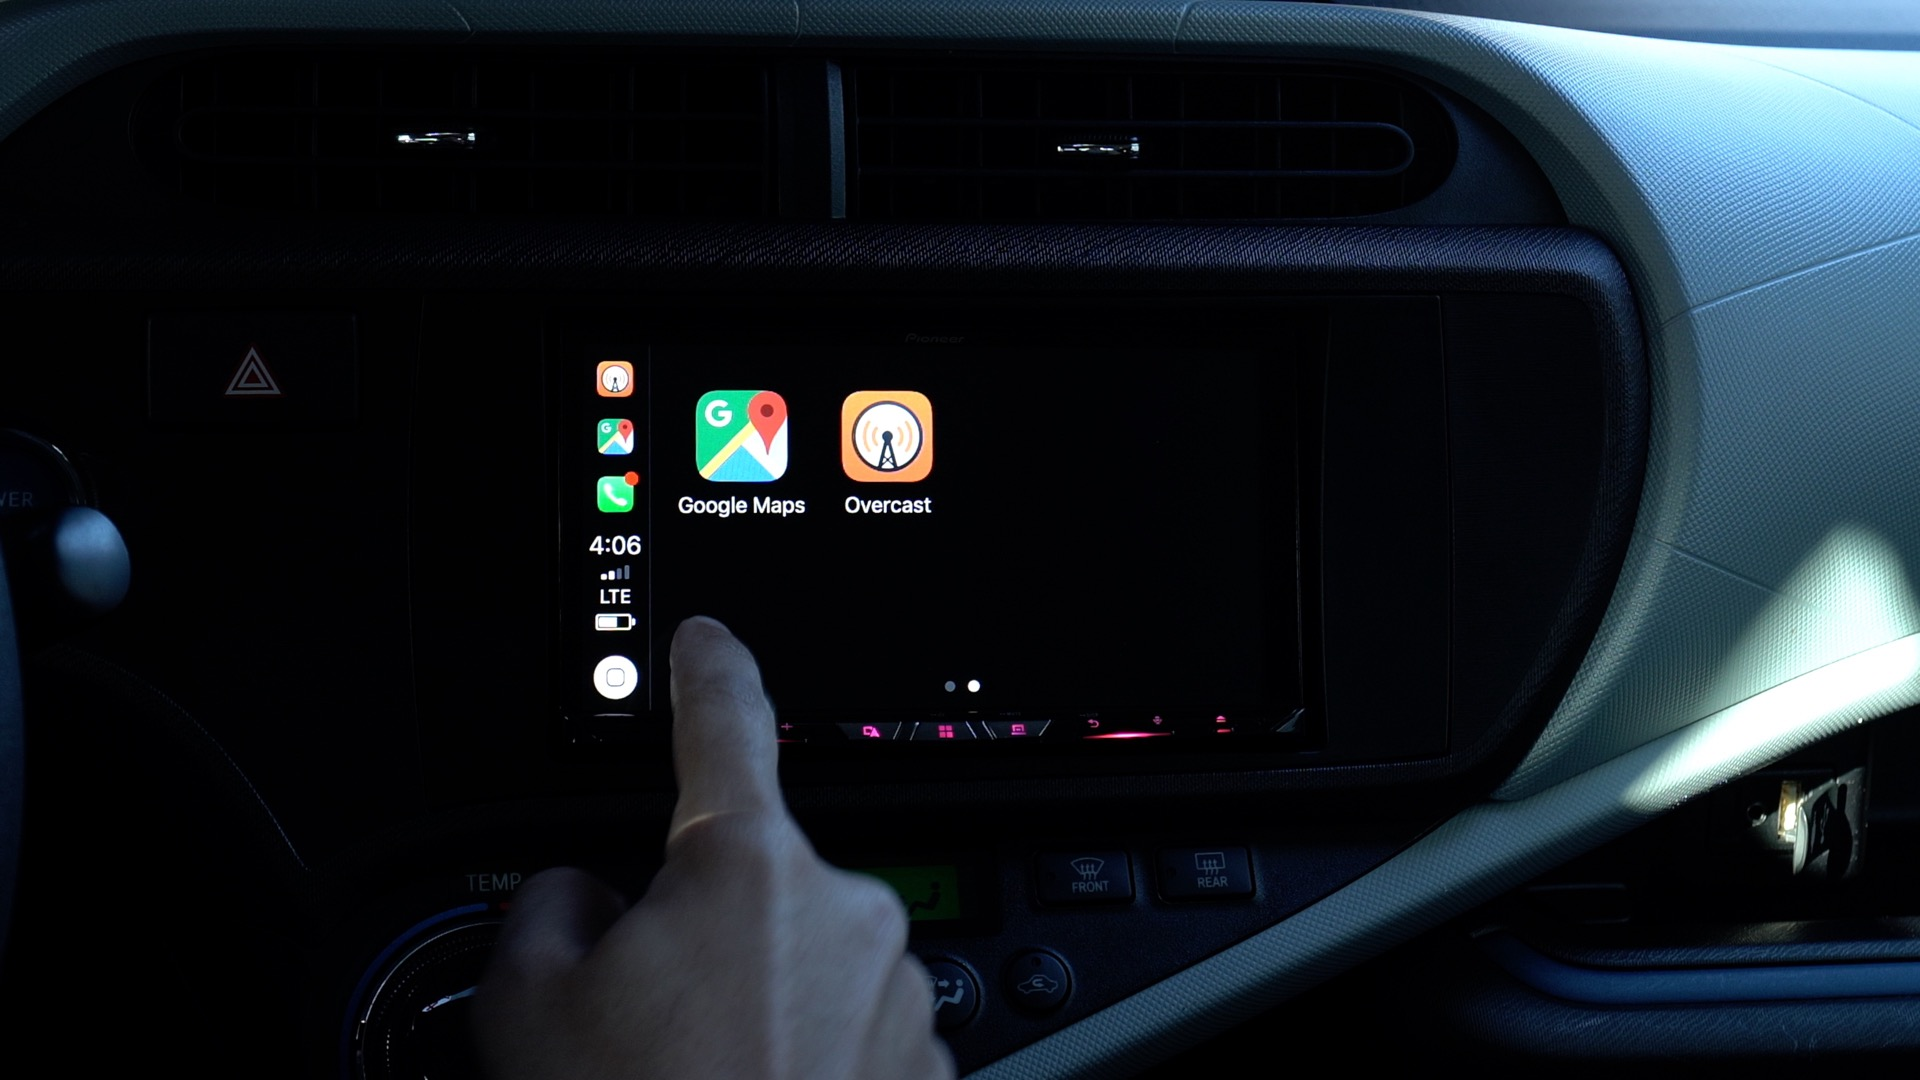 Hands On Pioneer S W8400nex Wireless Carplay Head Unit Is Fast And